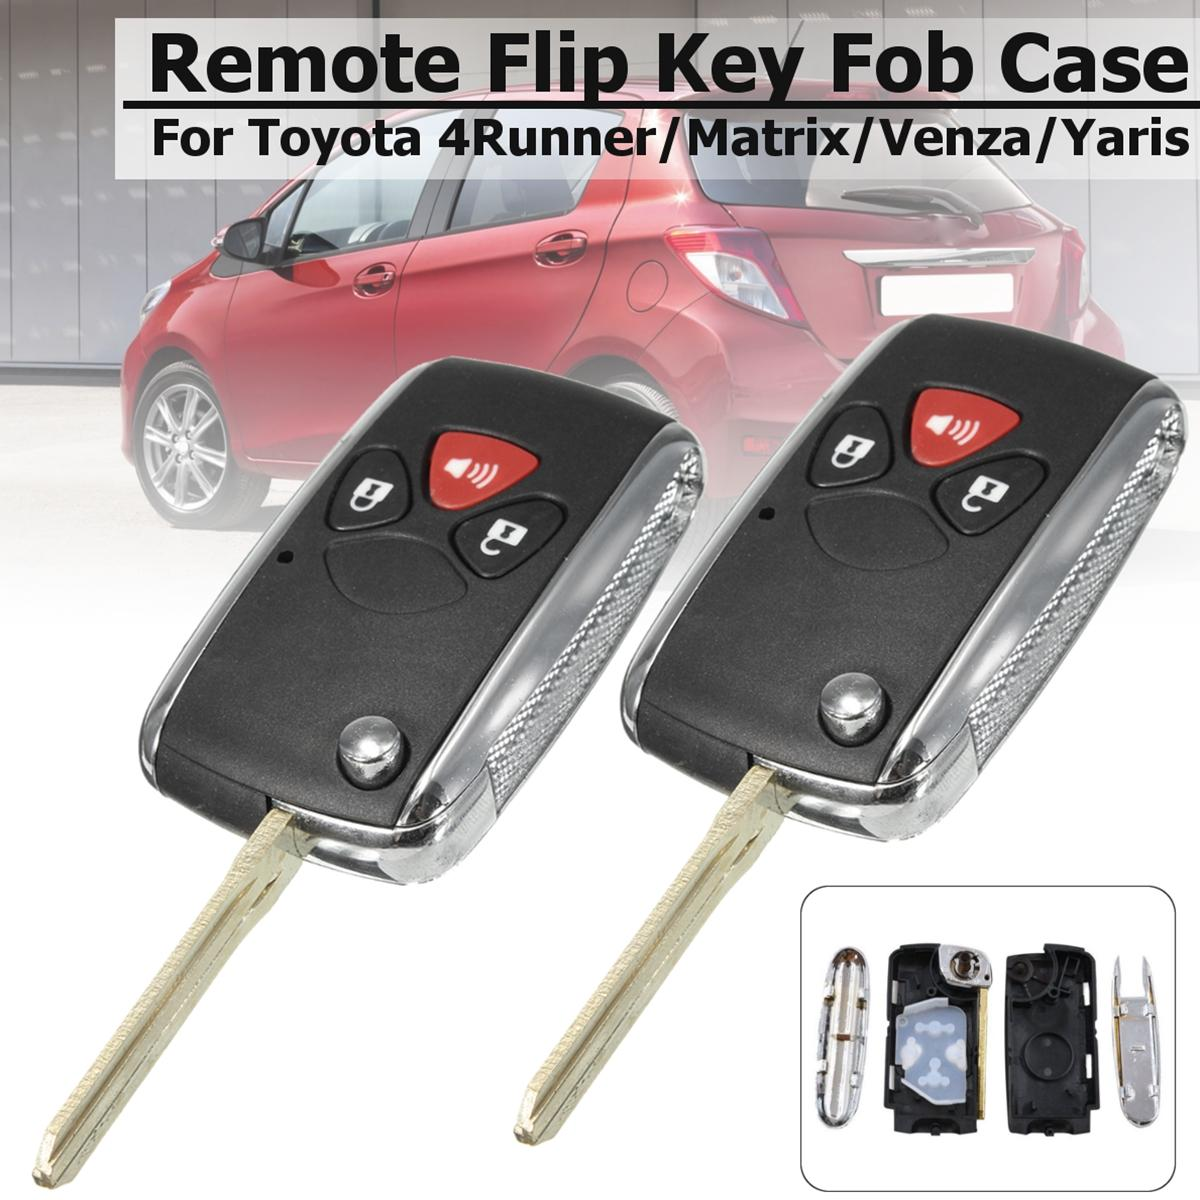 Keyless Entry For Sale Car Online Brands Prices Toyota Key Fob Diagram 2x New Remote Shell Flip Case Uncut Blade 3 Buttons Intl